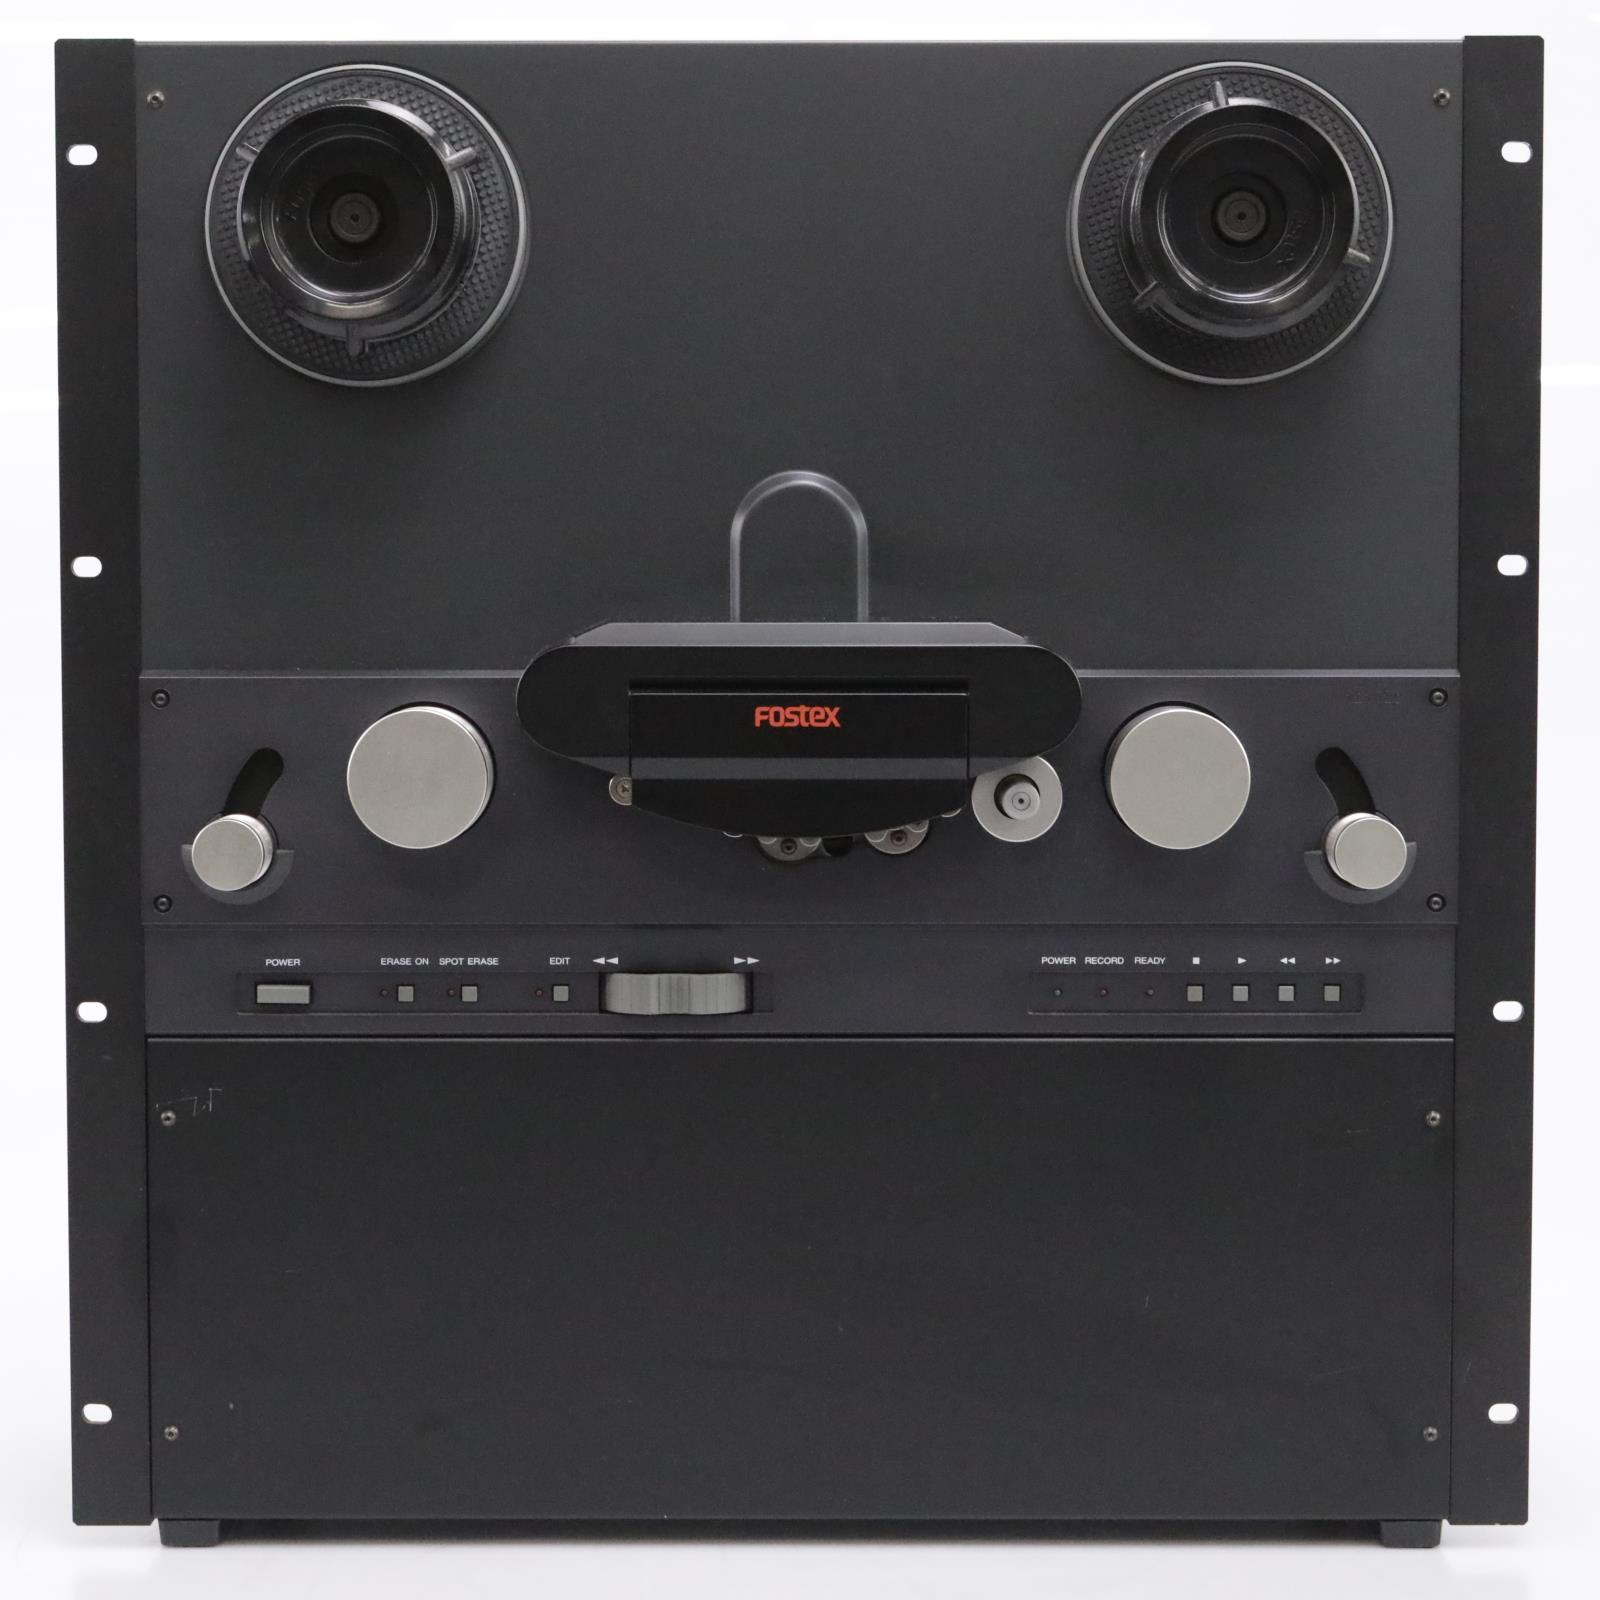 Fostex G16S 16-Track Playback Only Tape Recorder w/ Remote #43780